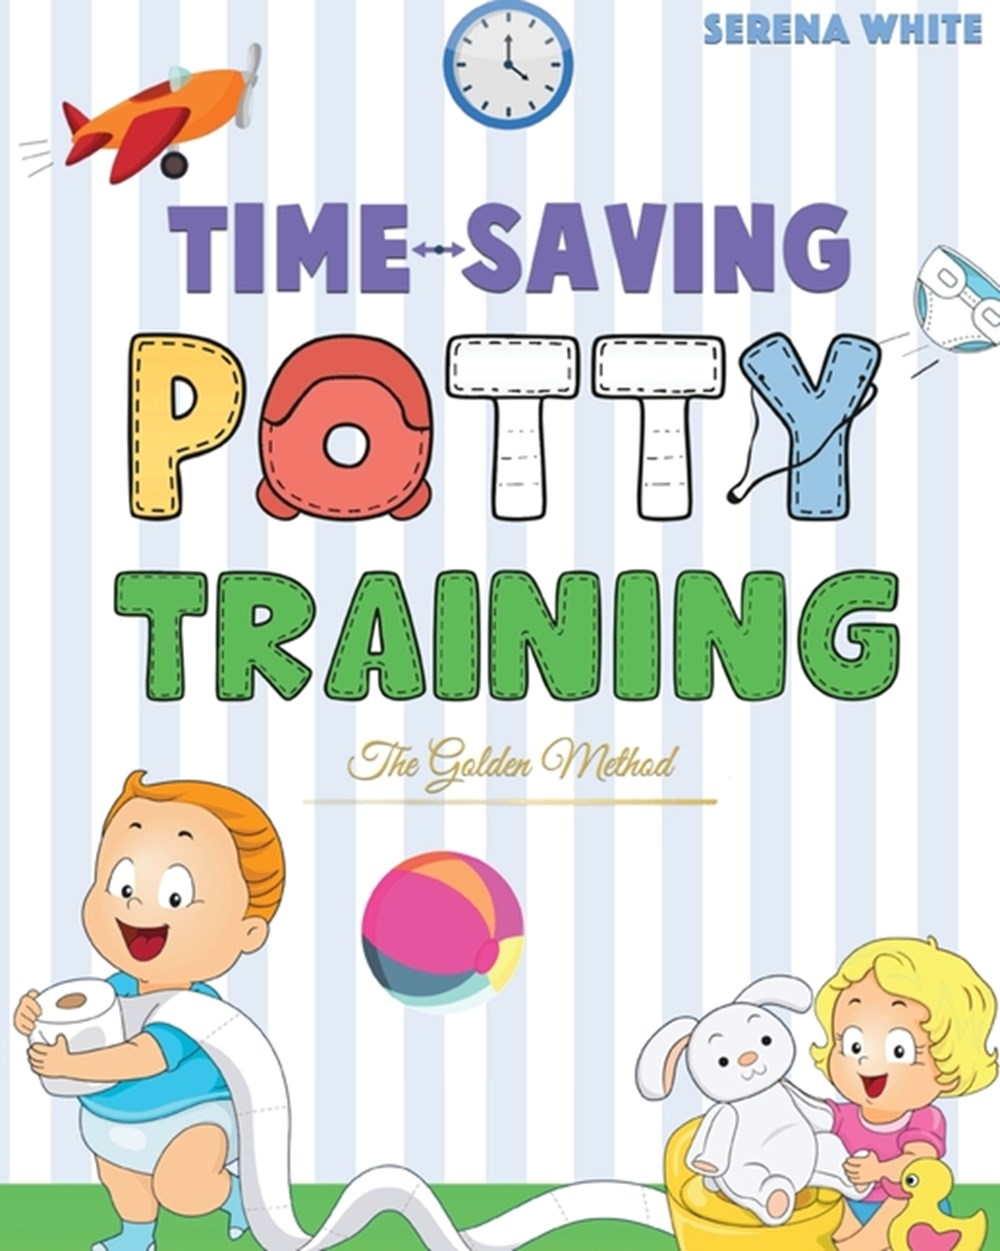 Time-Saving Potty Training - The Golden Method Potty Train Your Little Boys and Girls In Less Than 3